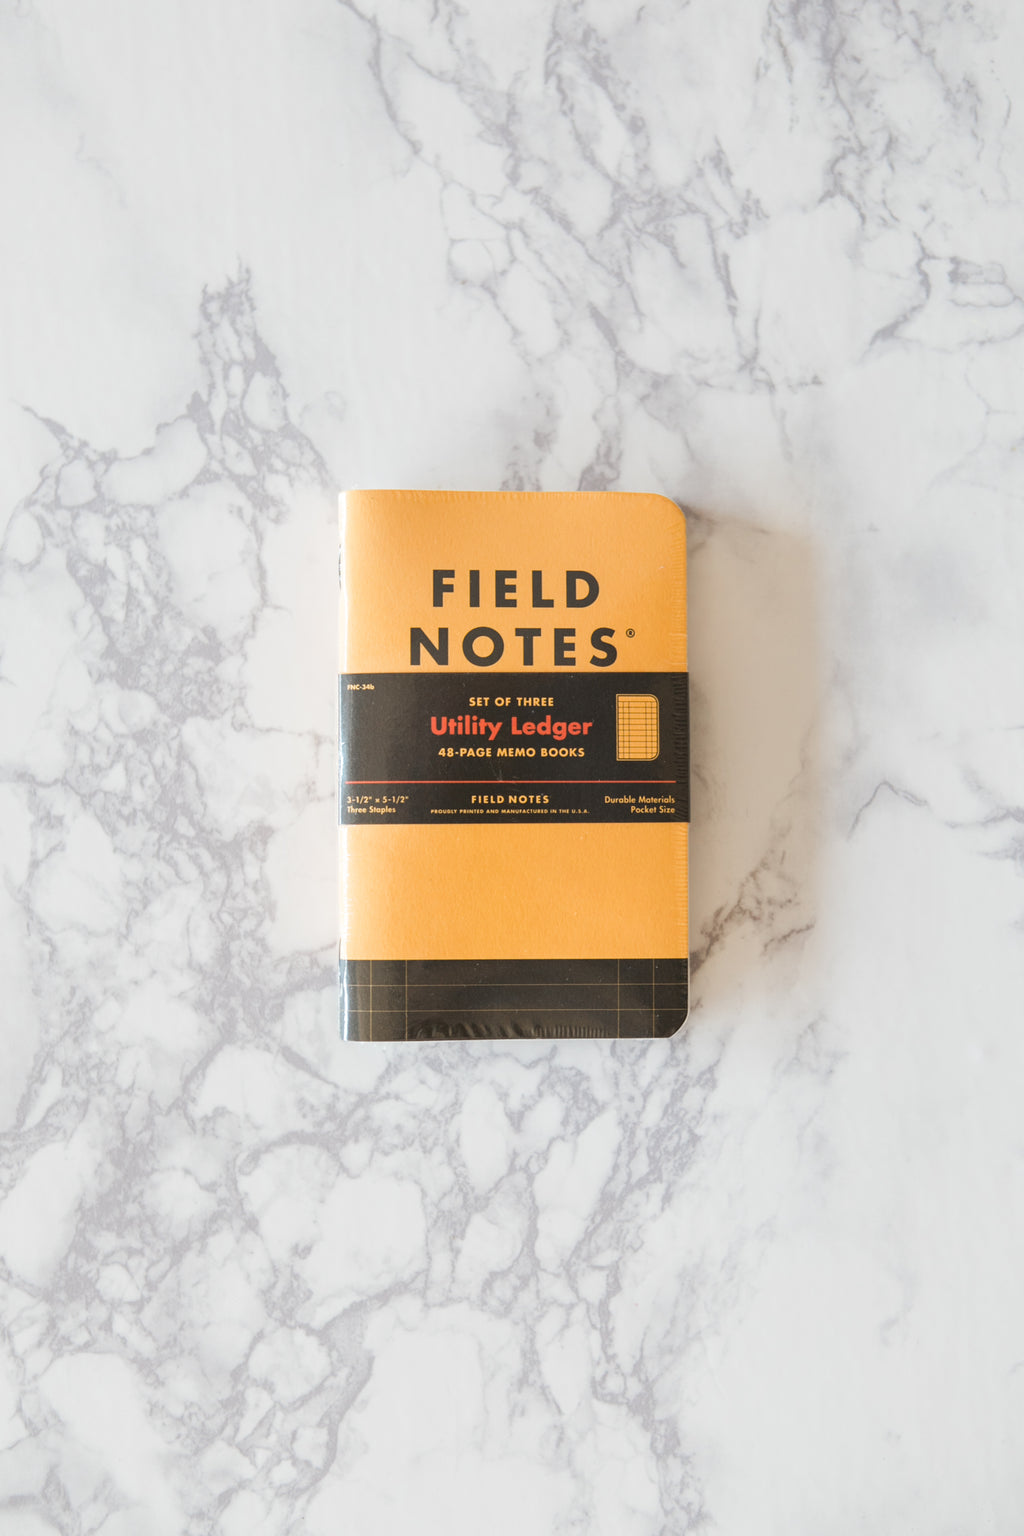 Utility Ledger Memo Books - Field Notes